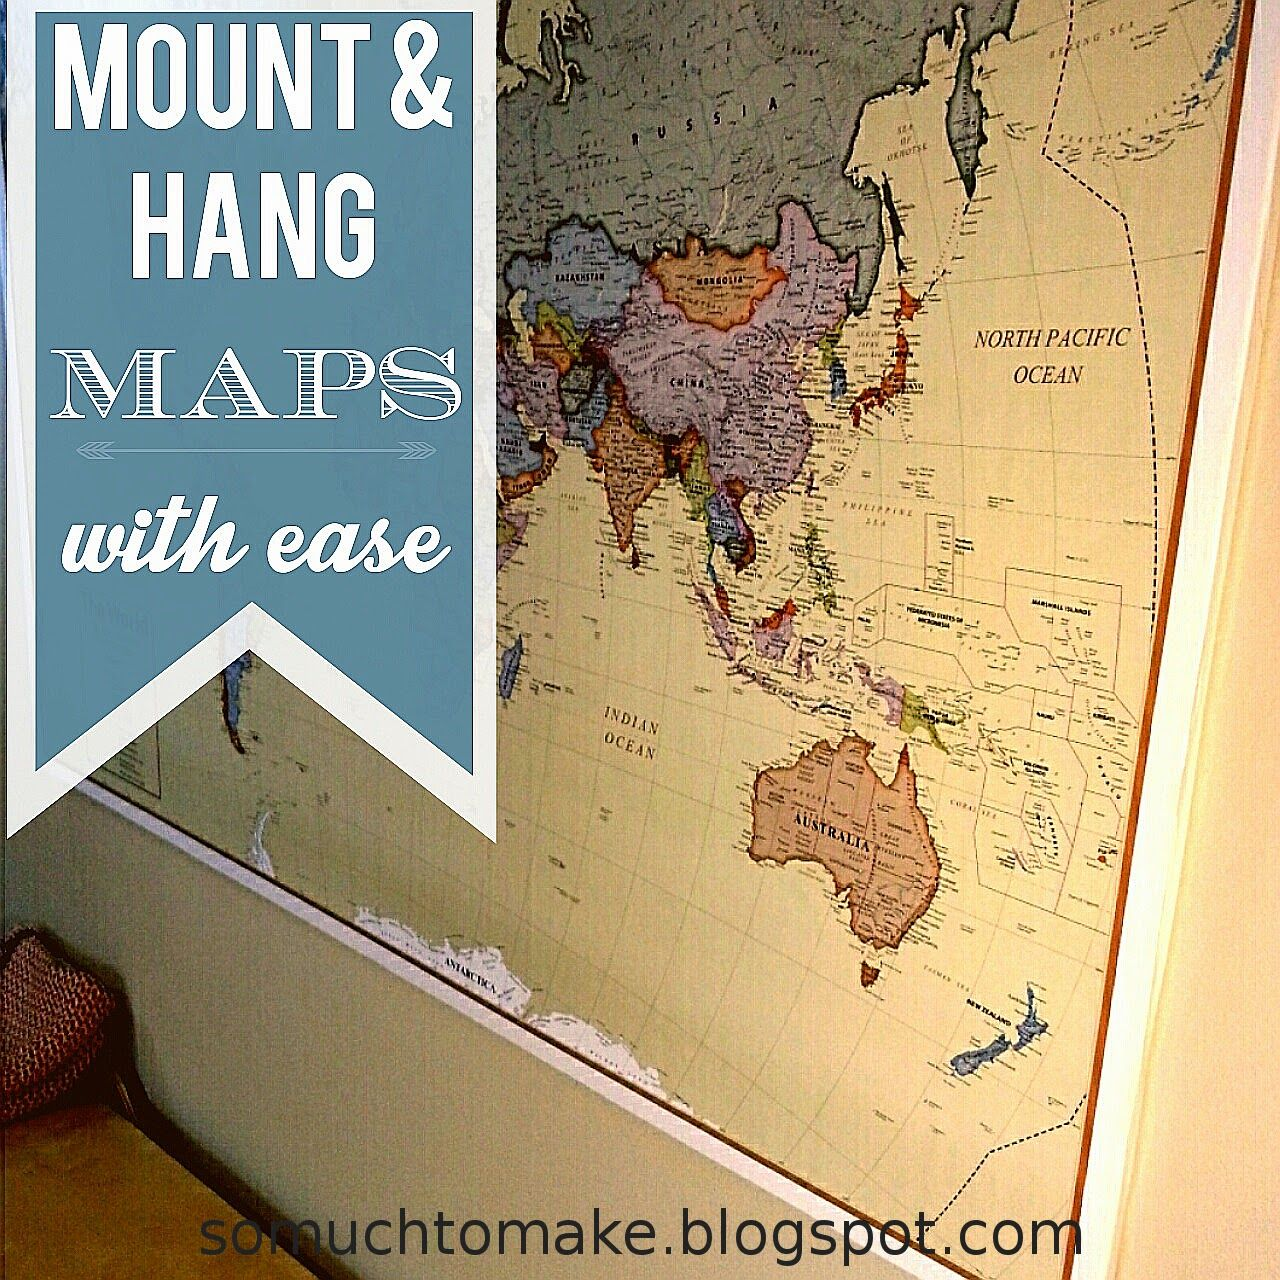 Mount and hang large maps with ease insulation board insulation mount and hang large maps with ease sciox Image collections